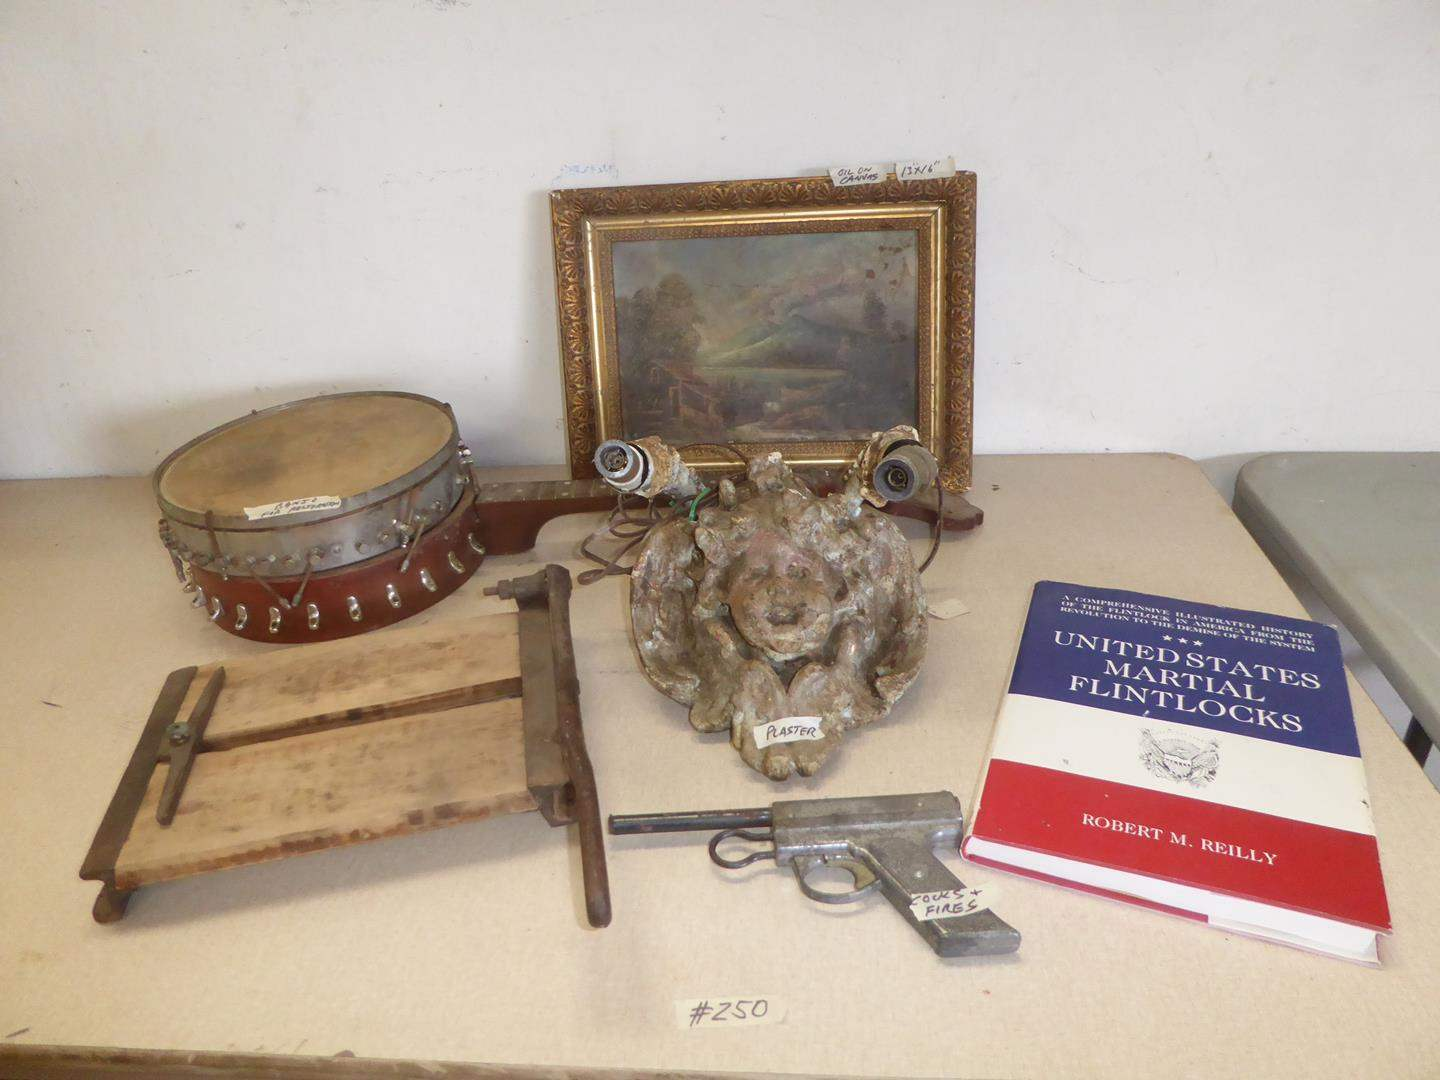 Lot # 250 - Antique Paper Cutter, Toy Gun, Old Distressed Plaster Cherub Wall Lamp, Banjo & Framed Oil on Canvas (main image)